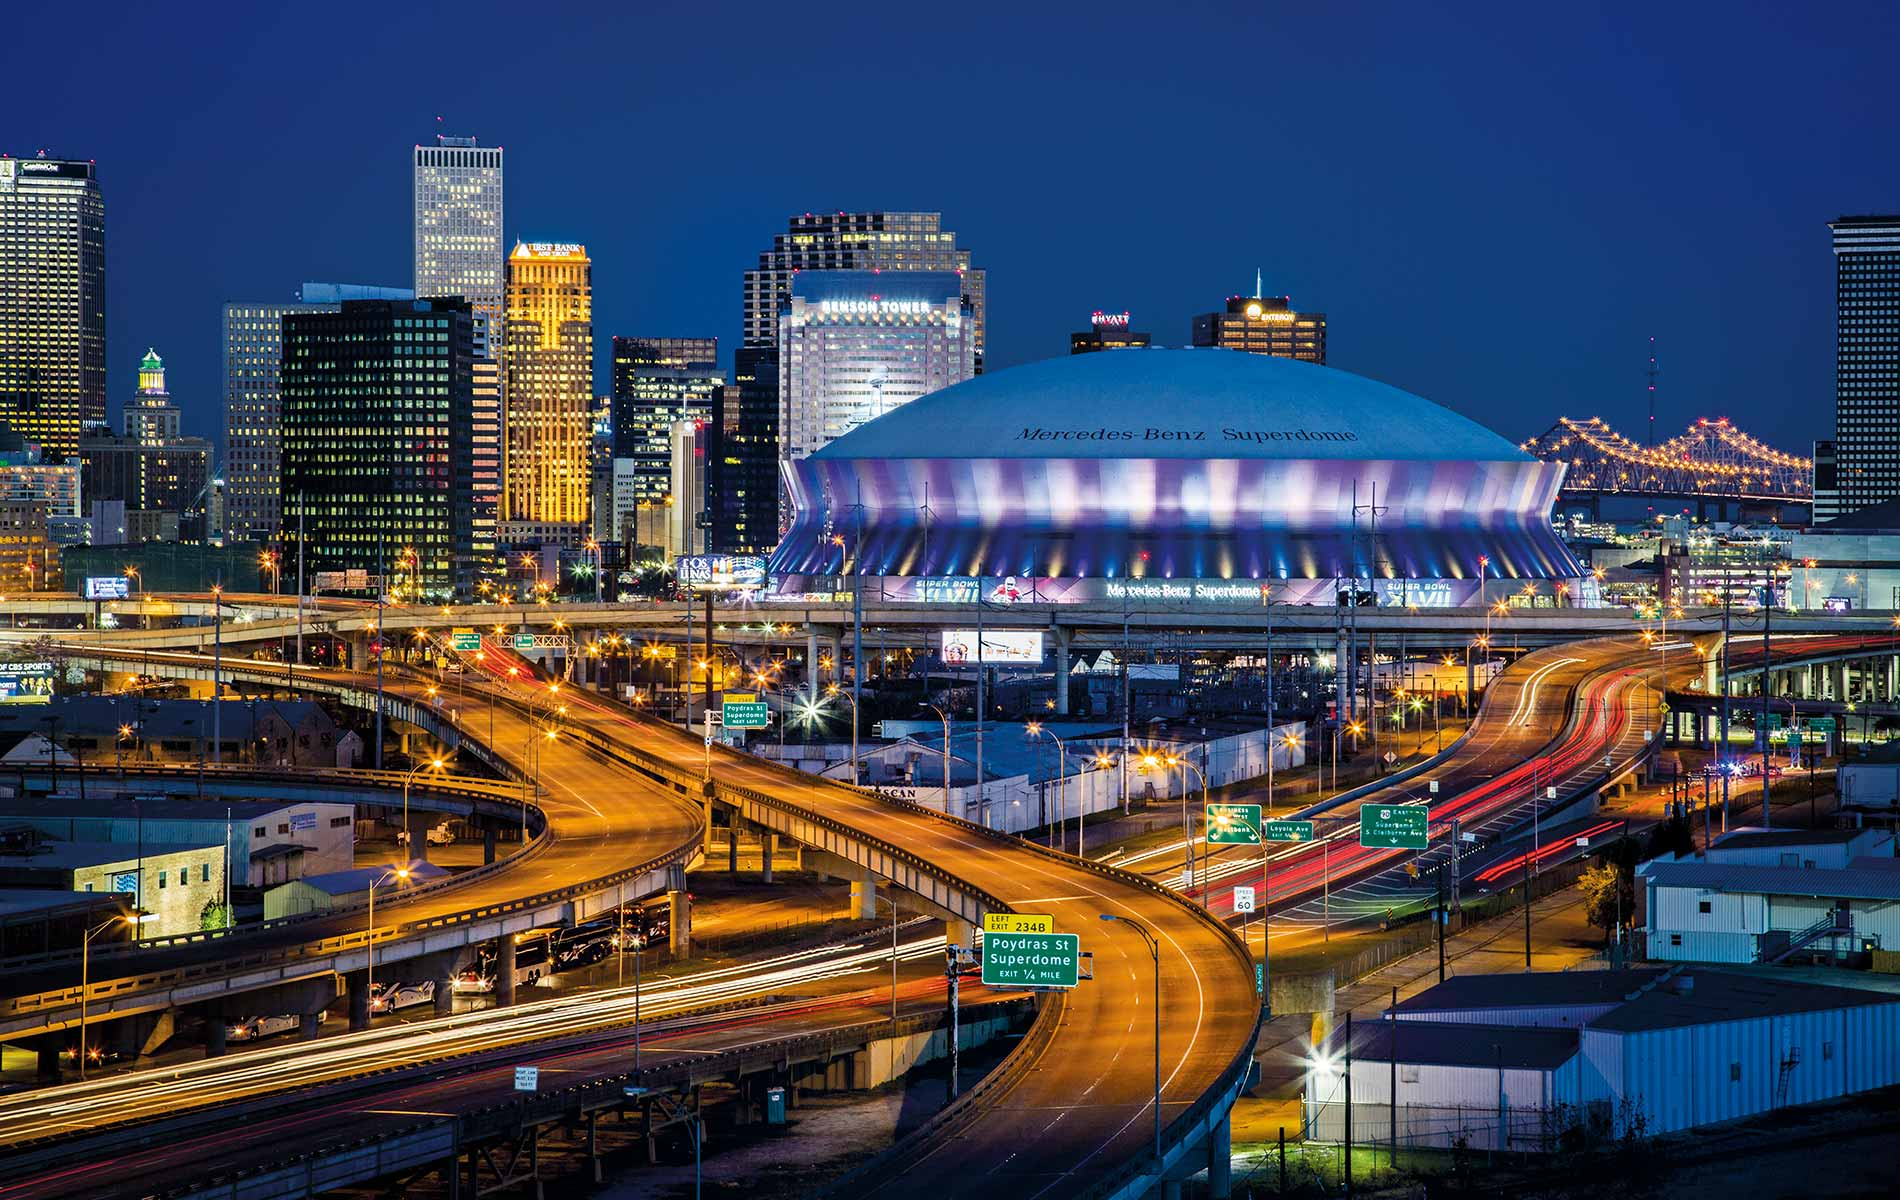 Cityscape of New Orleans, Louisiana